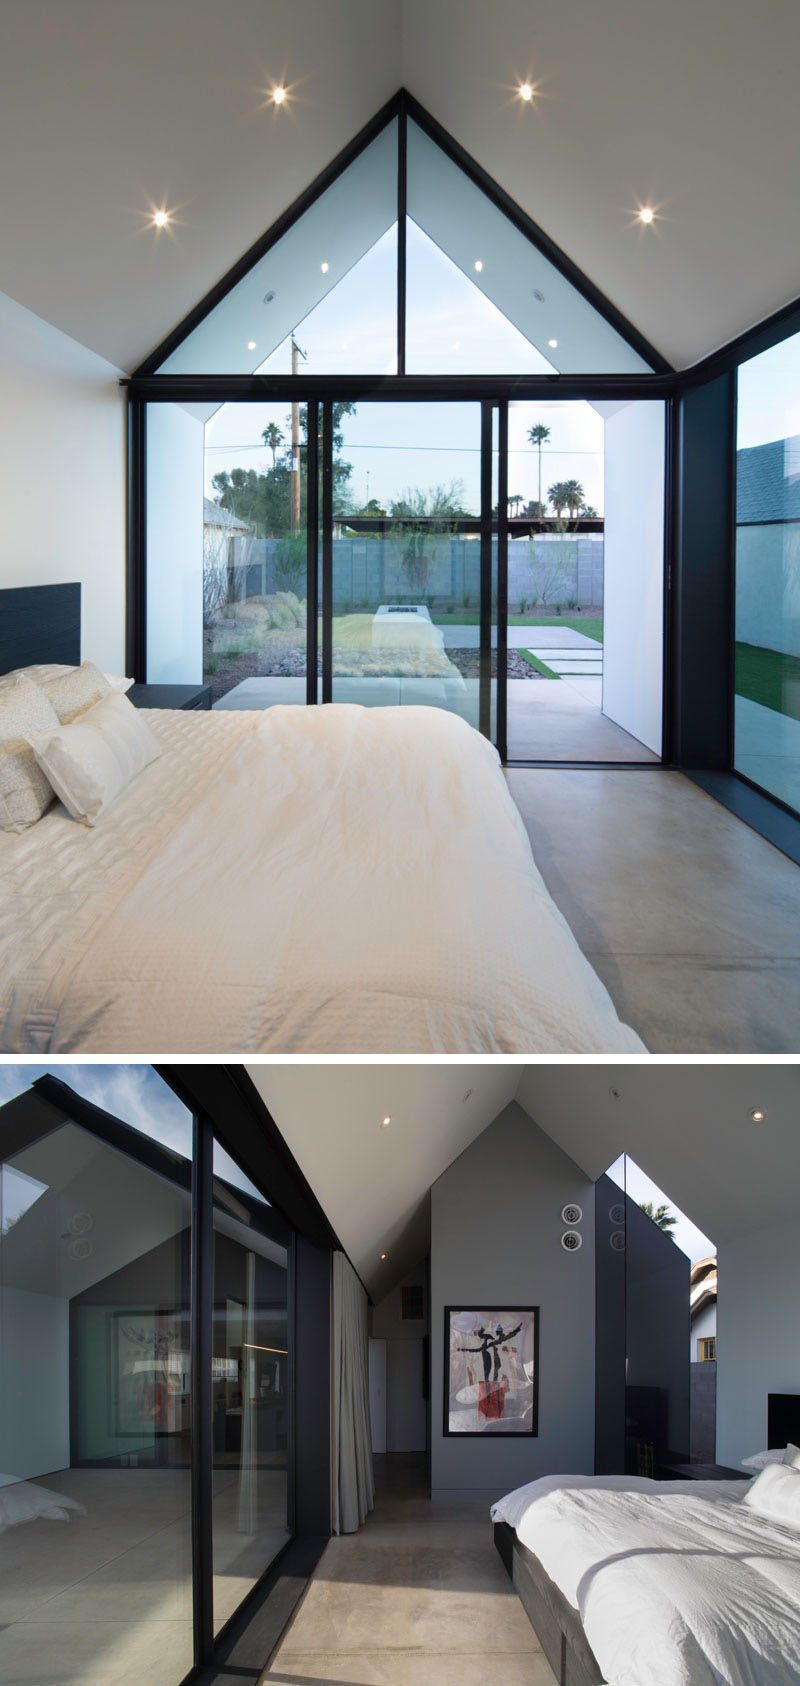 ^ 1000+ images about modern architecture on Pinterest Haus ...